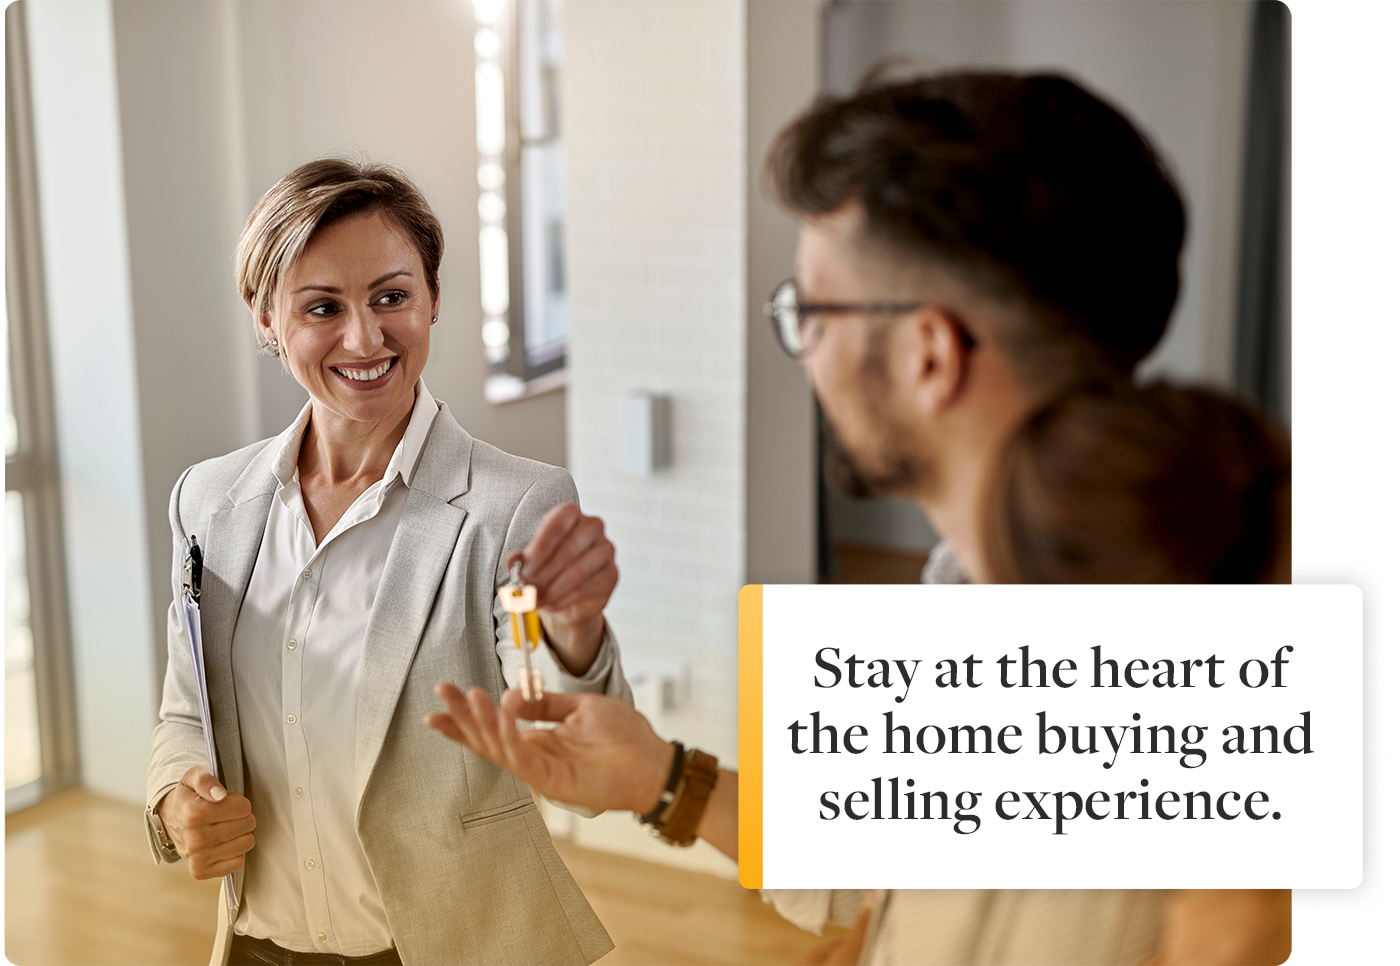 real estate agent in center of home buying experience with couple giving keys